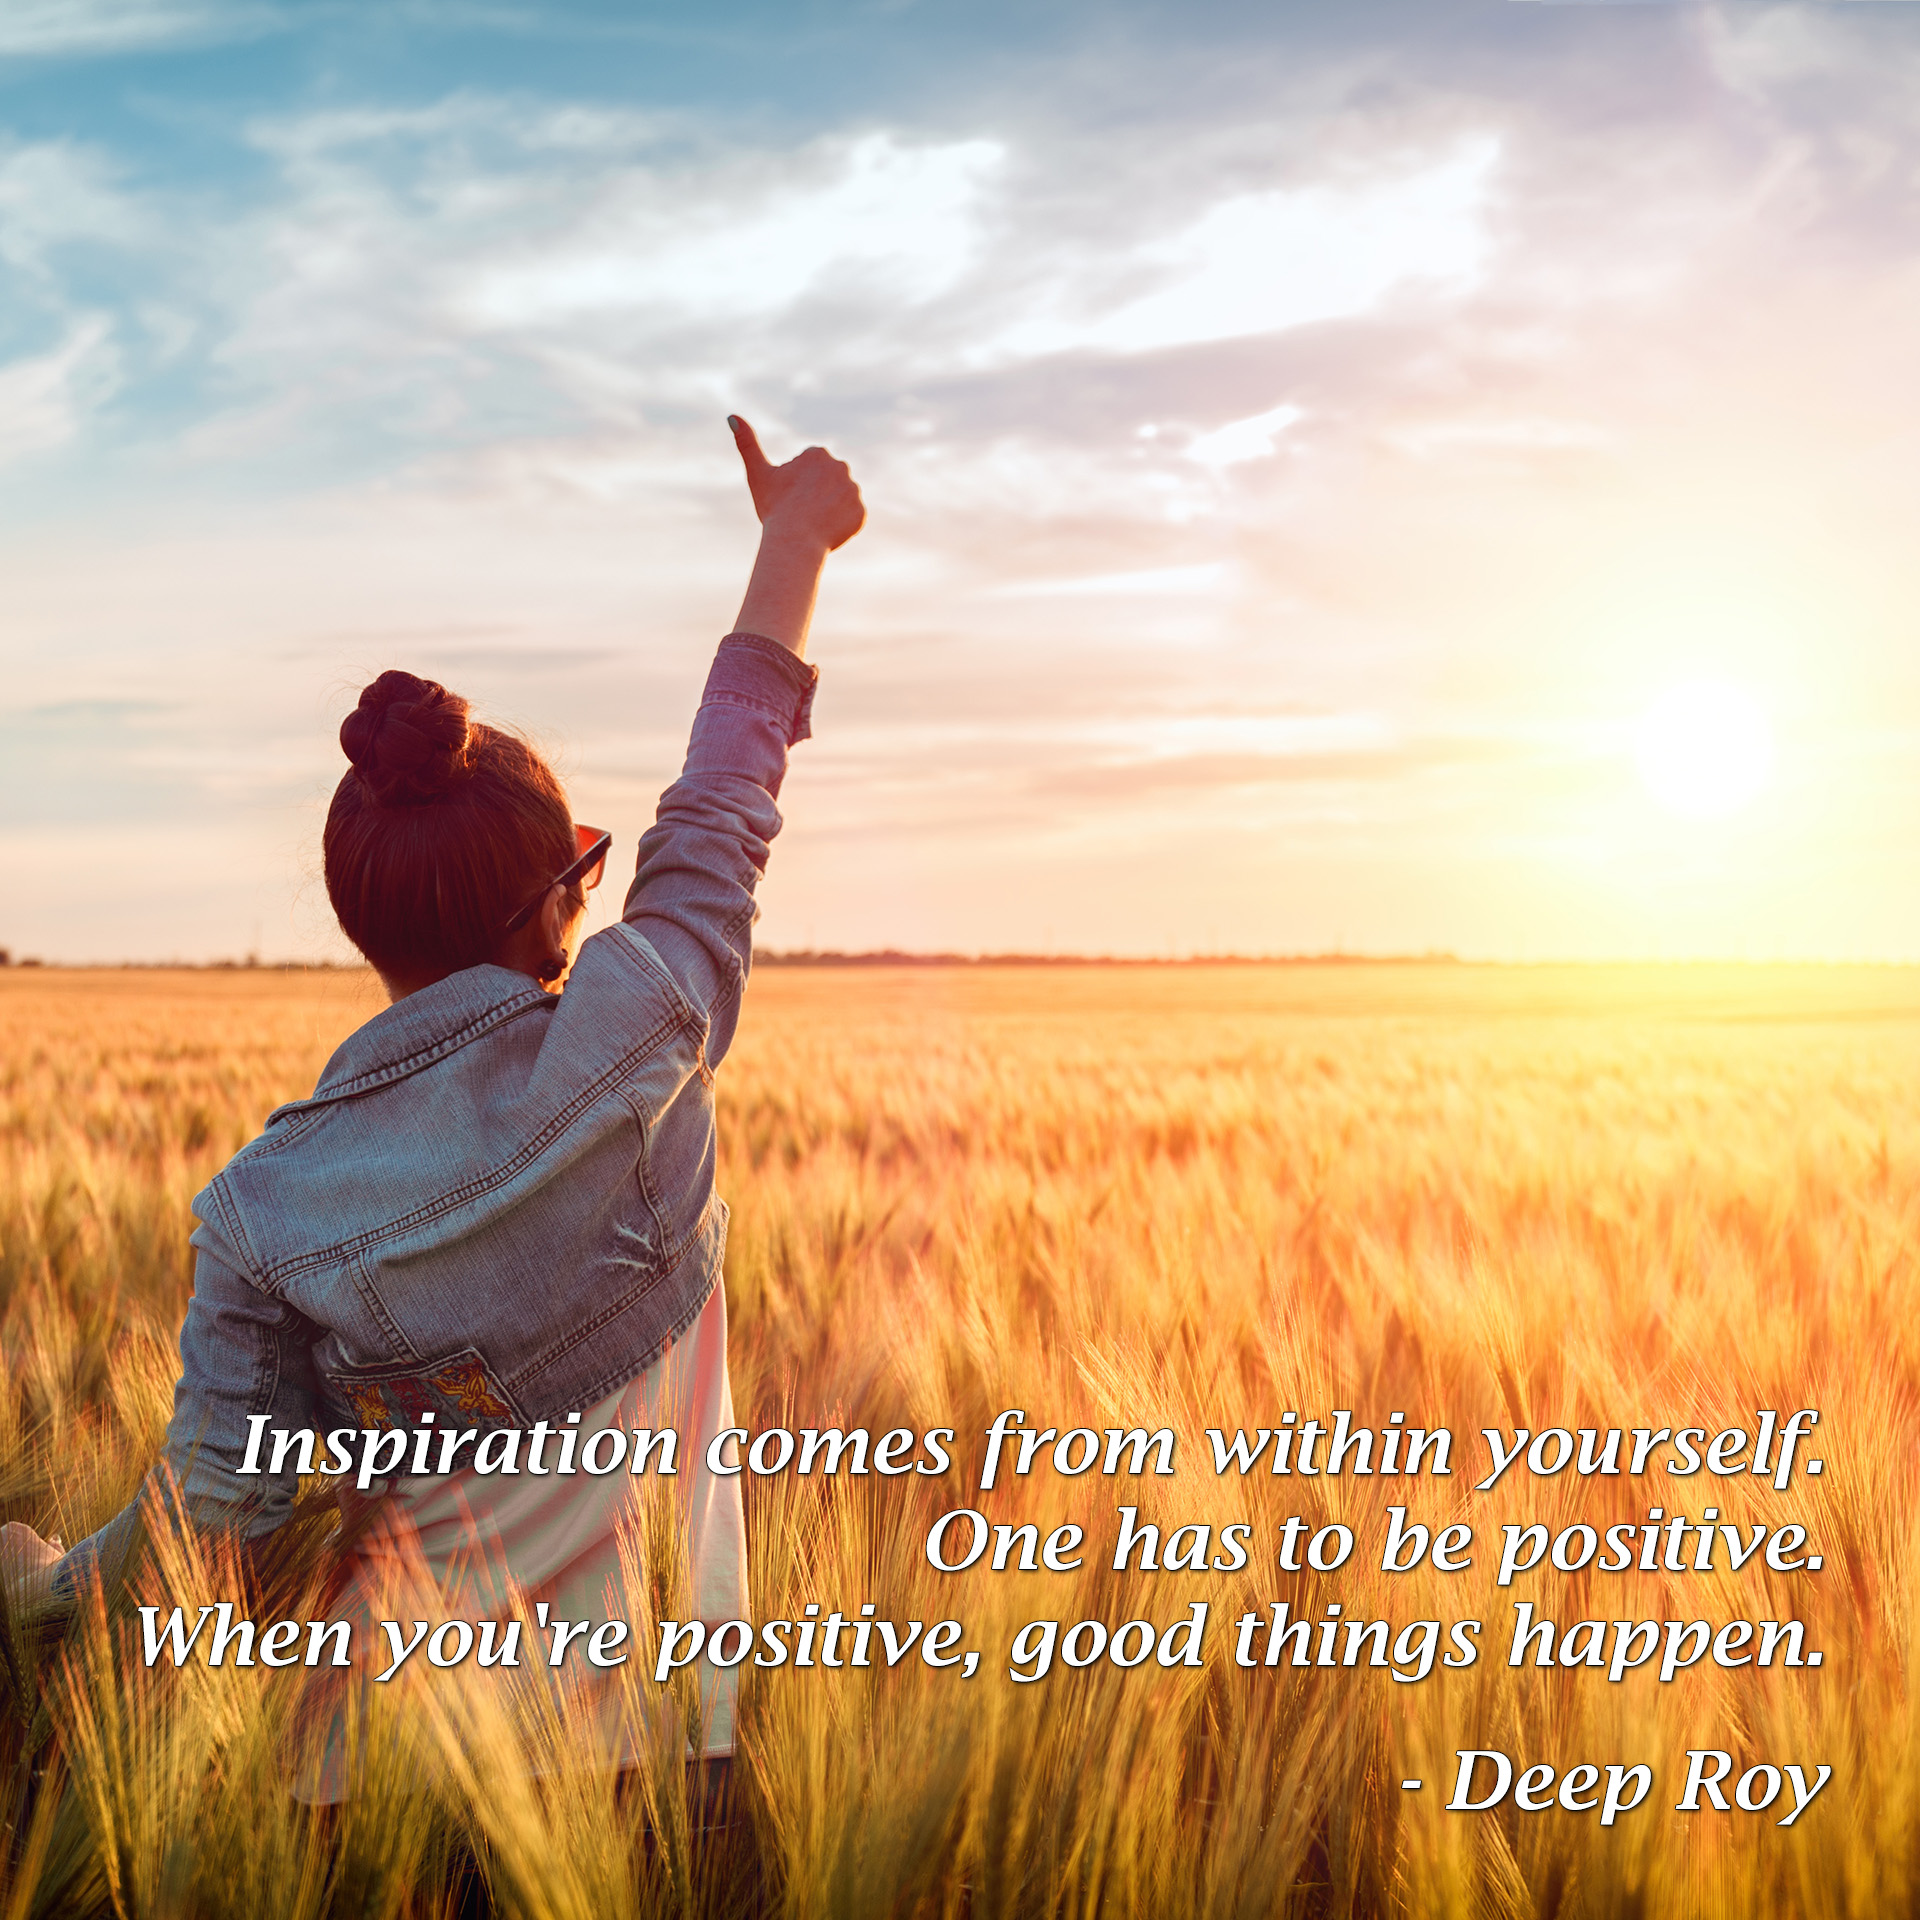 Inspiration comes from within yourself. One has to be positive. When you're positive, good things happen. - Deep Roy